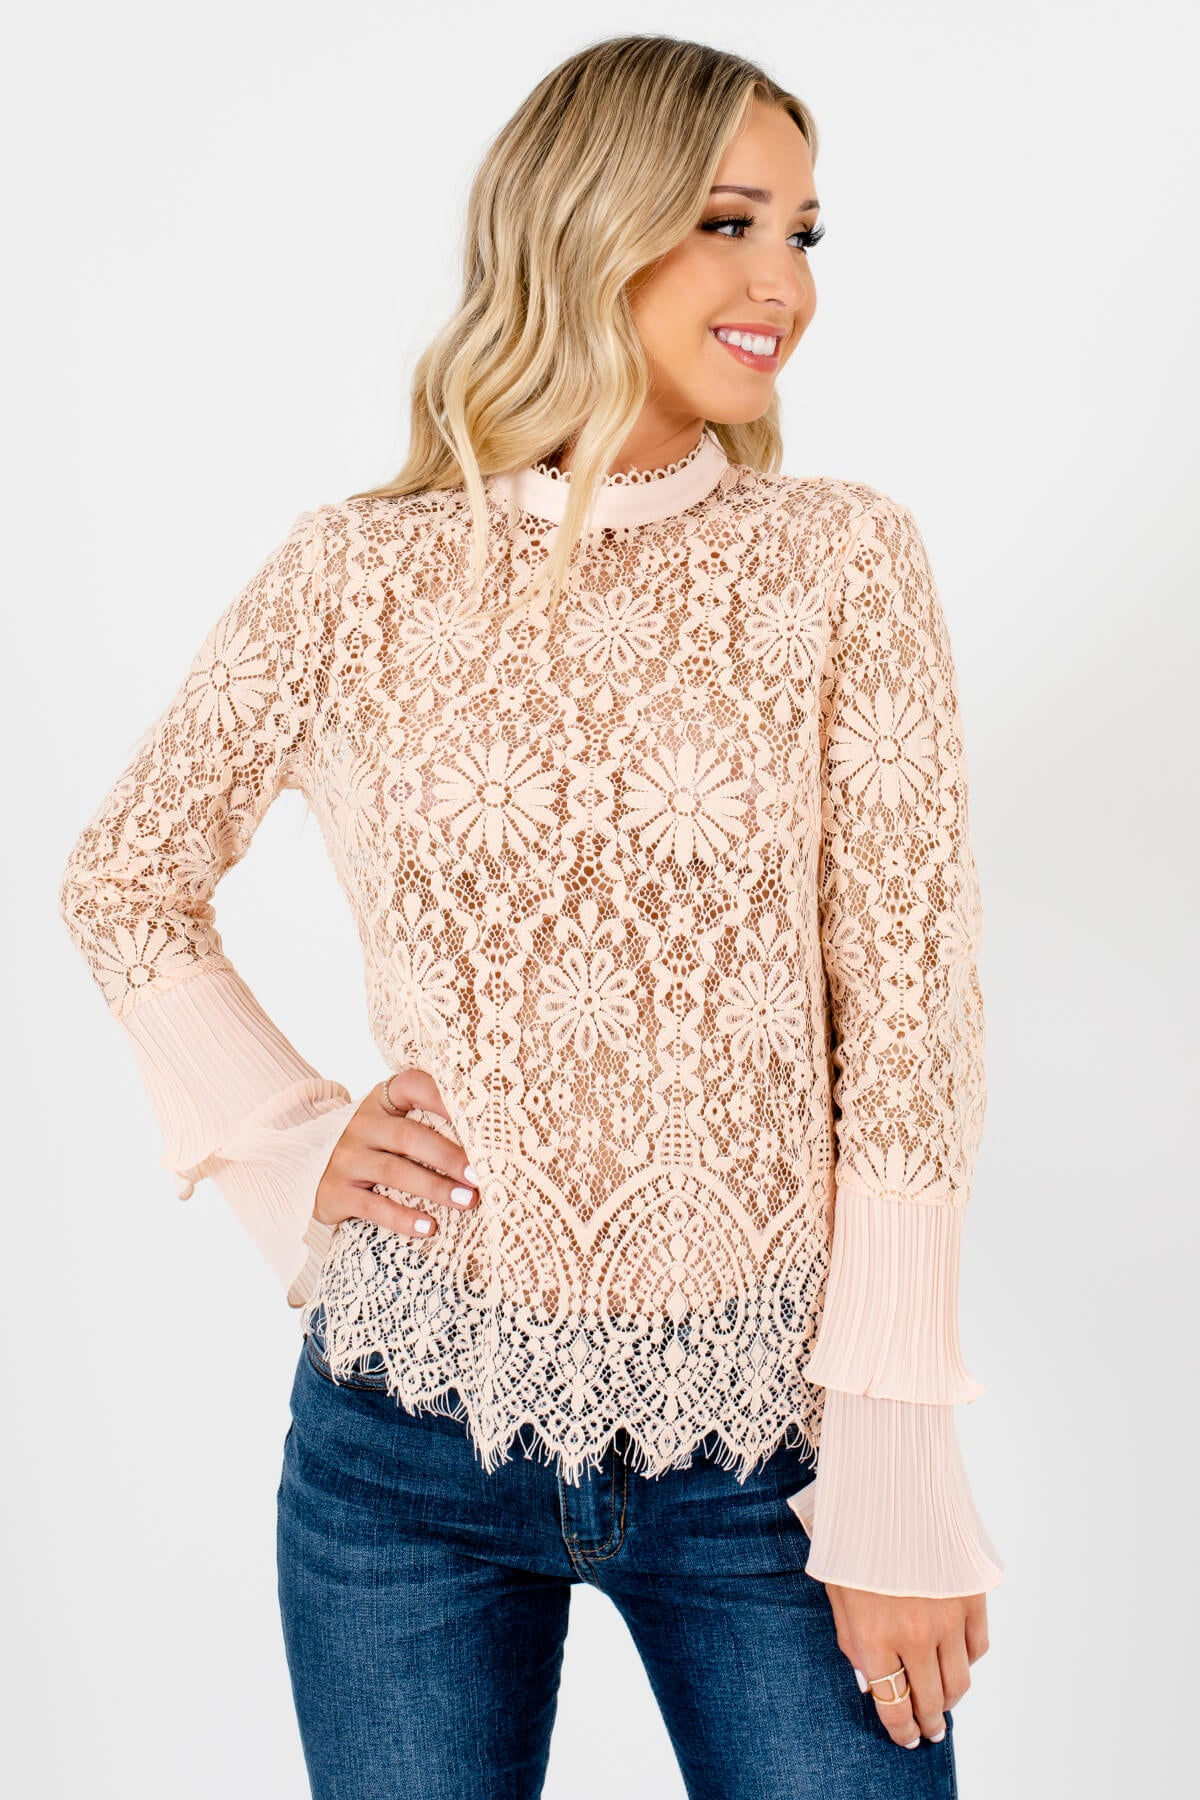 c42c7bc4e9 All Dressed Up Pink Lace Top